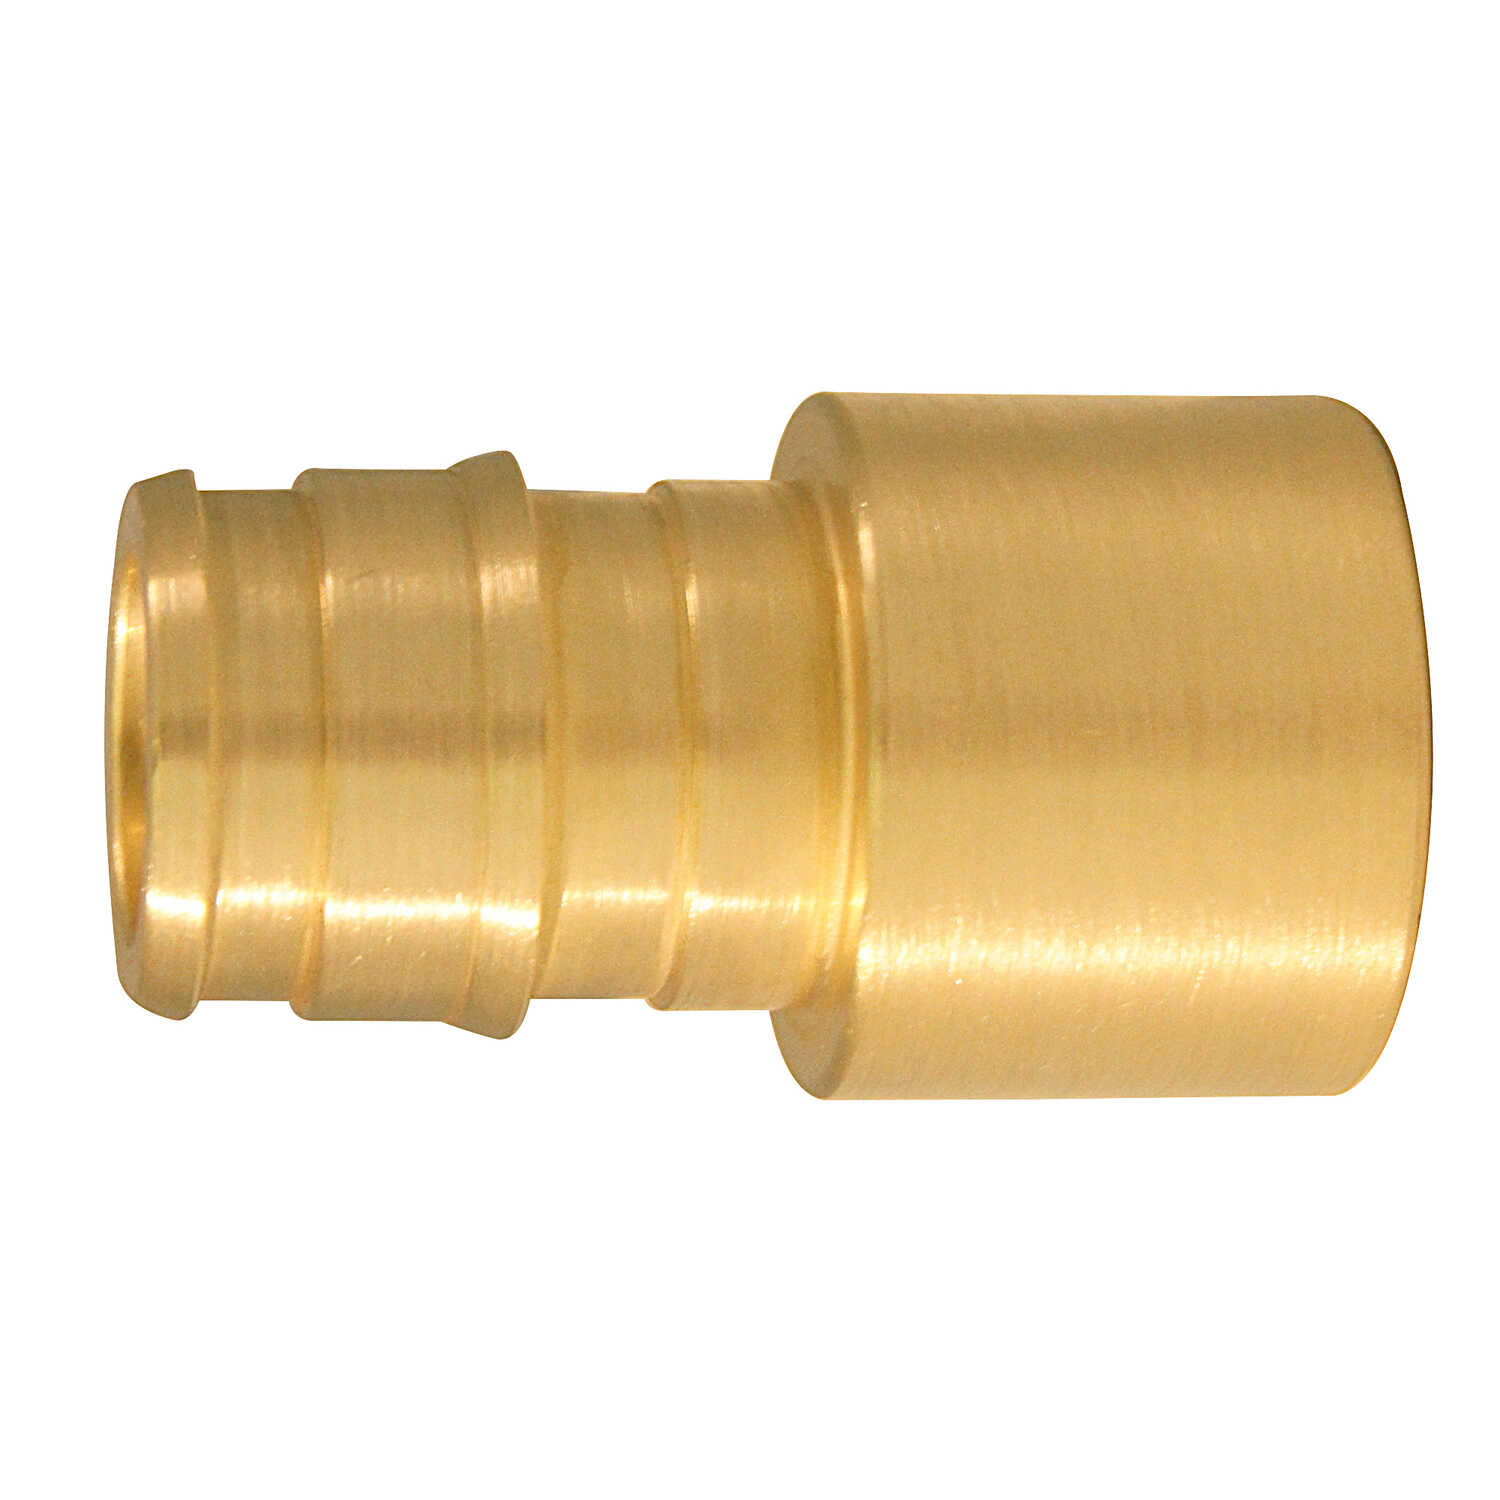 Apollo  Expansion PEX / Pex A  1 in. Dia. x PEX   CTS  1 in. 1 pk Female Adapter